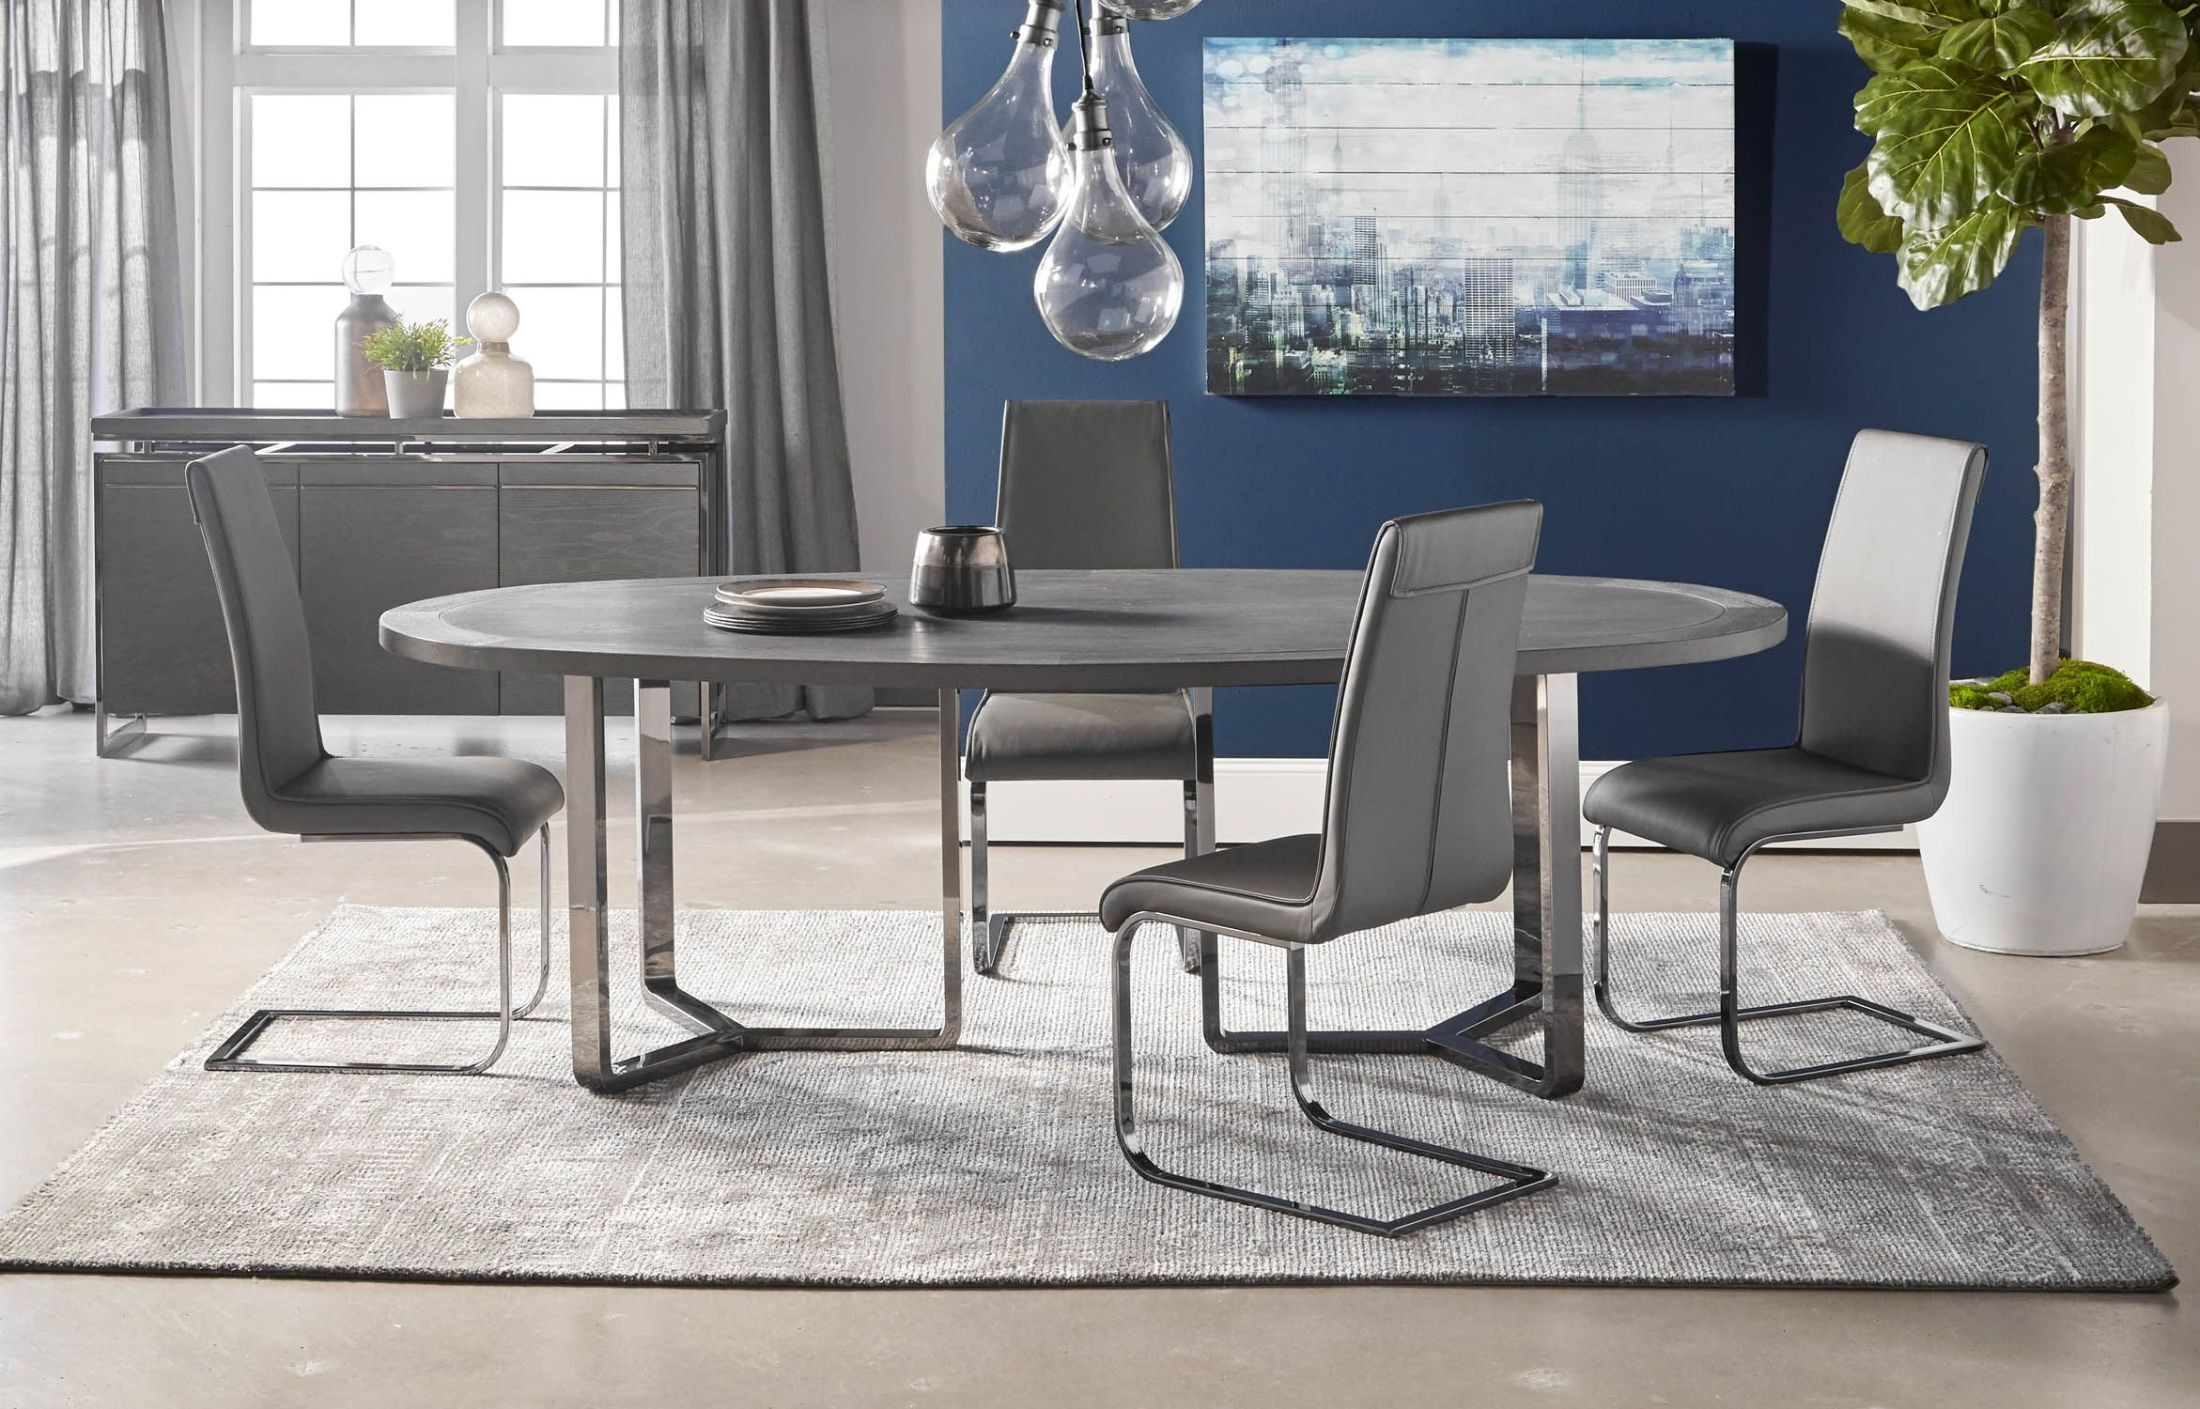 Malone Black Oval Dining Room Set with Milo Dining Chairs & Malone Black Oval Dining Room Set with Milo Dining Chairs from Star ...